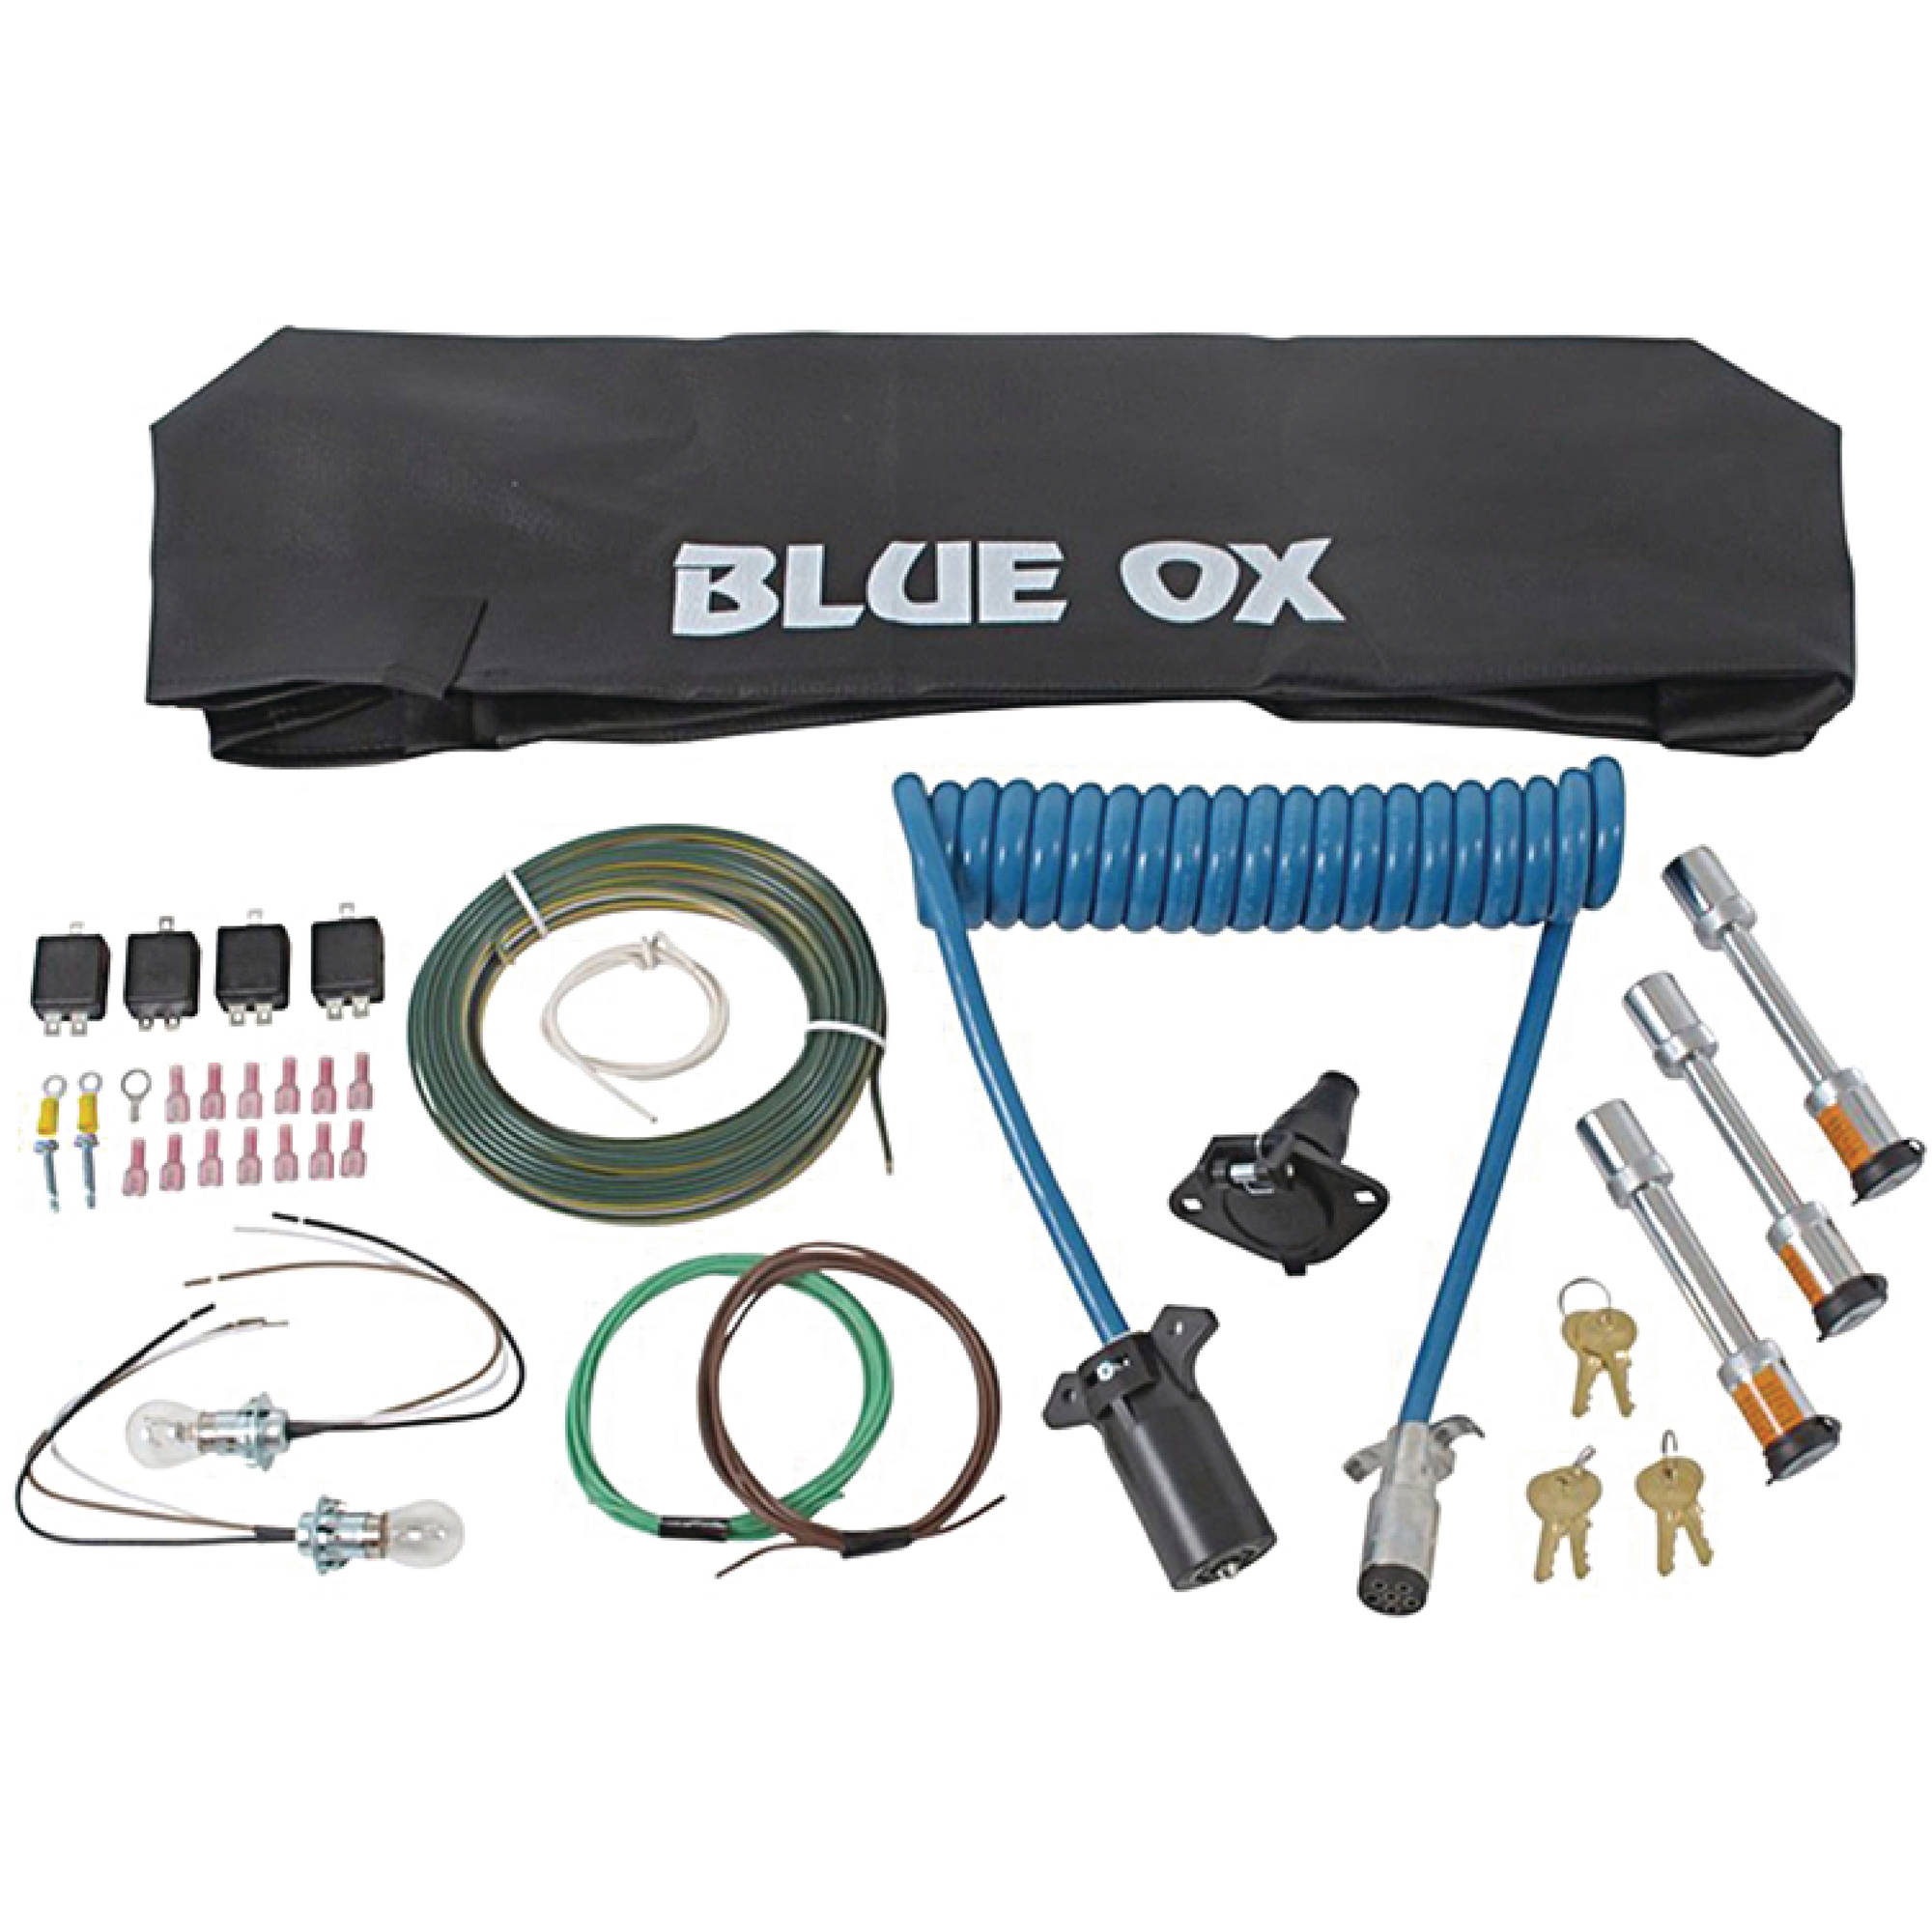 Blue Ox BX88231 Blue Ox Aventa LX RV Towing Accessory Kit 7-6 by Blue Ox